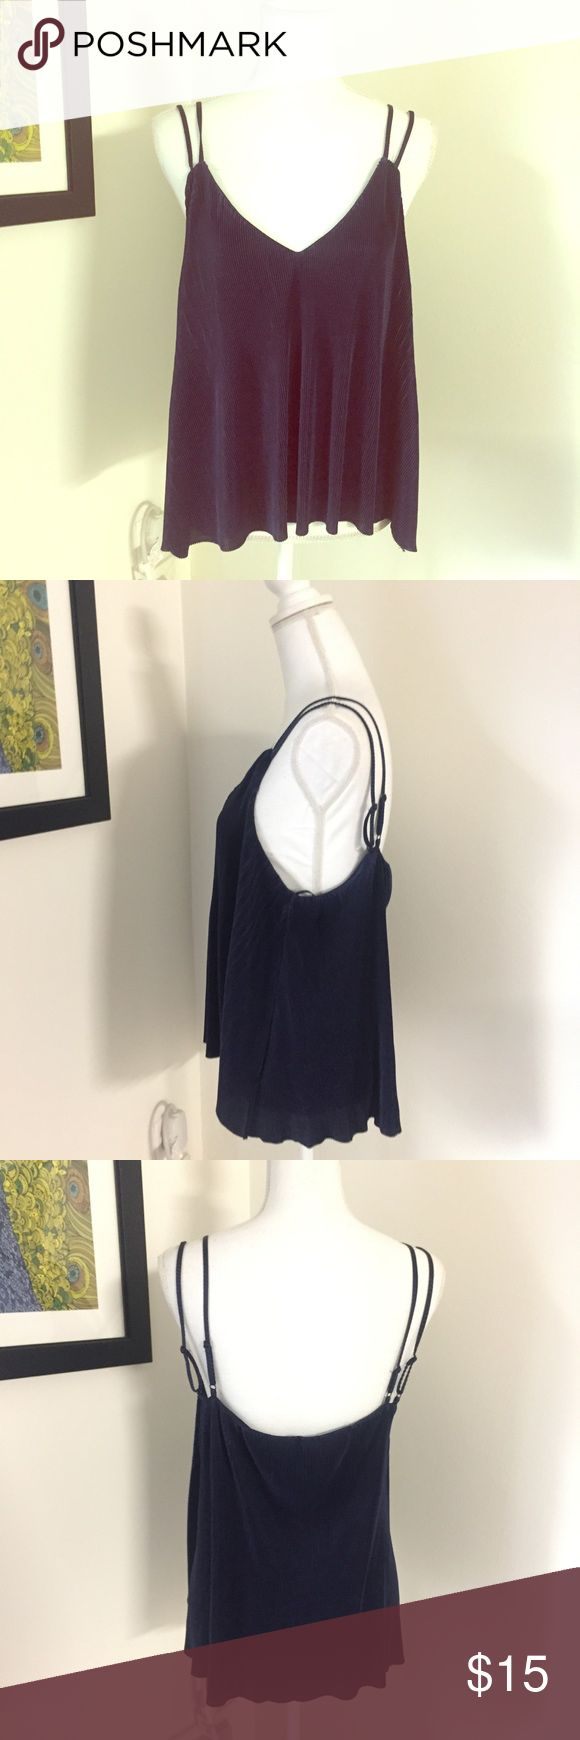 """Eloide navy blue Pleated flowy tank Adorable dark navy blue accordion pleated tank blouse. V-neck with double spaghetti straps. Brand new with tag. Bust 18"""", length 24"""". elodie Tops Blouses"""